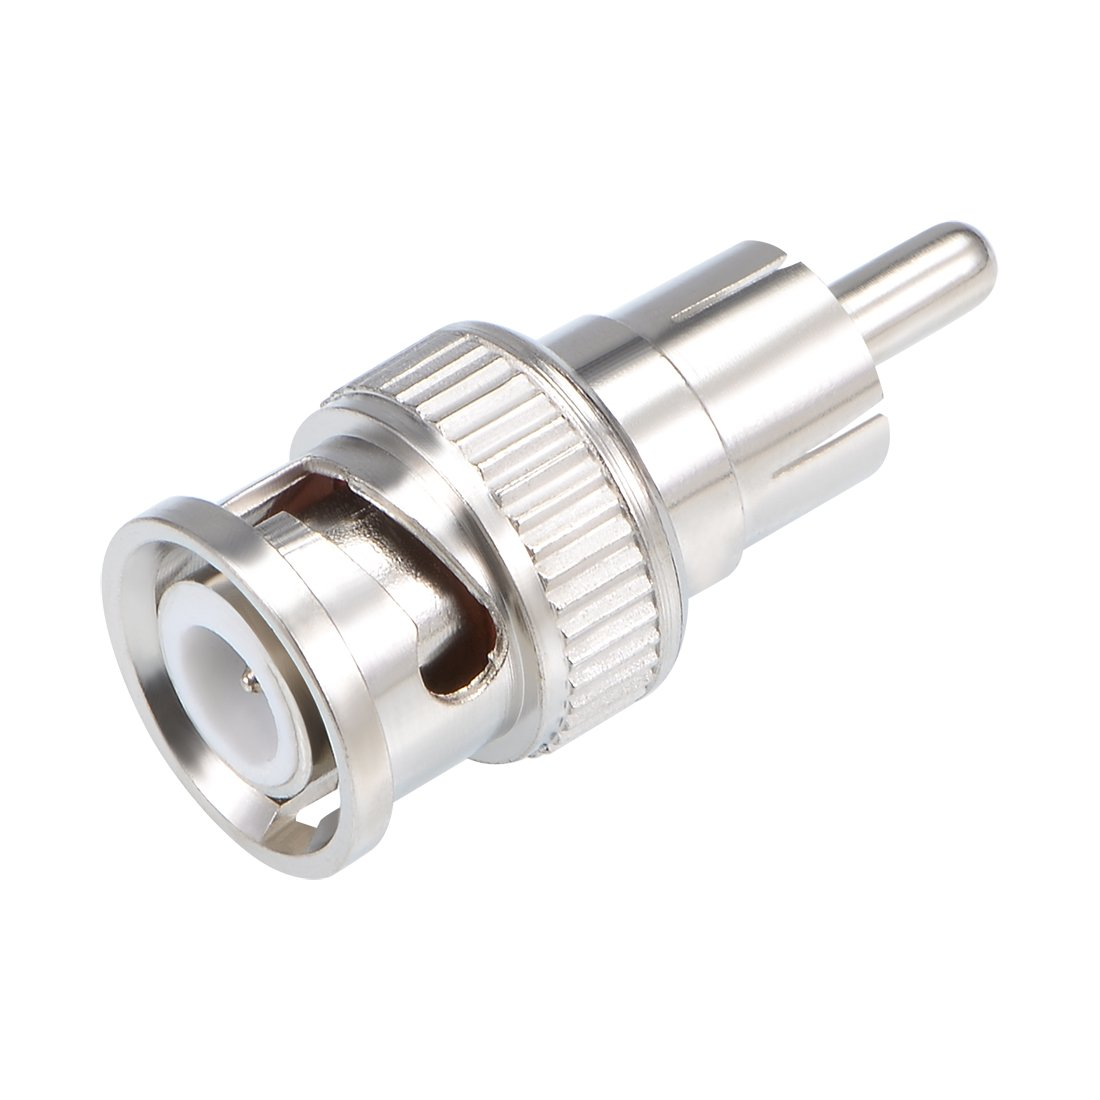 uxcell BNC Male to RCA Male Adapter Coaxial Cable Connector for CCTV Security Camera